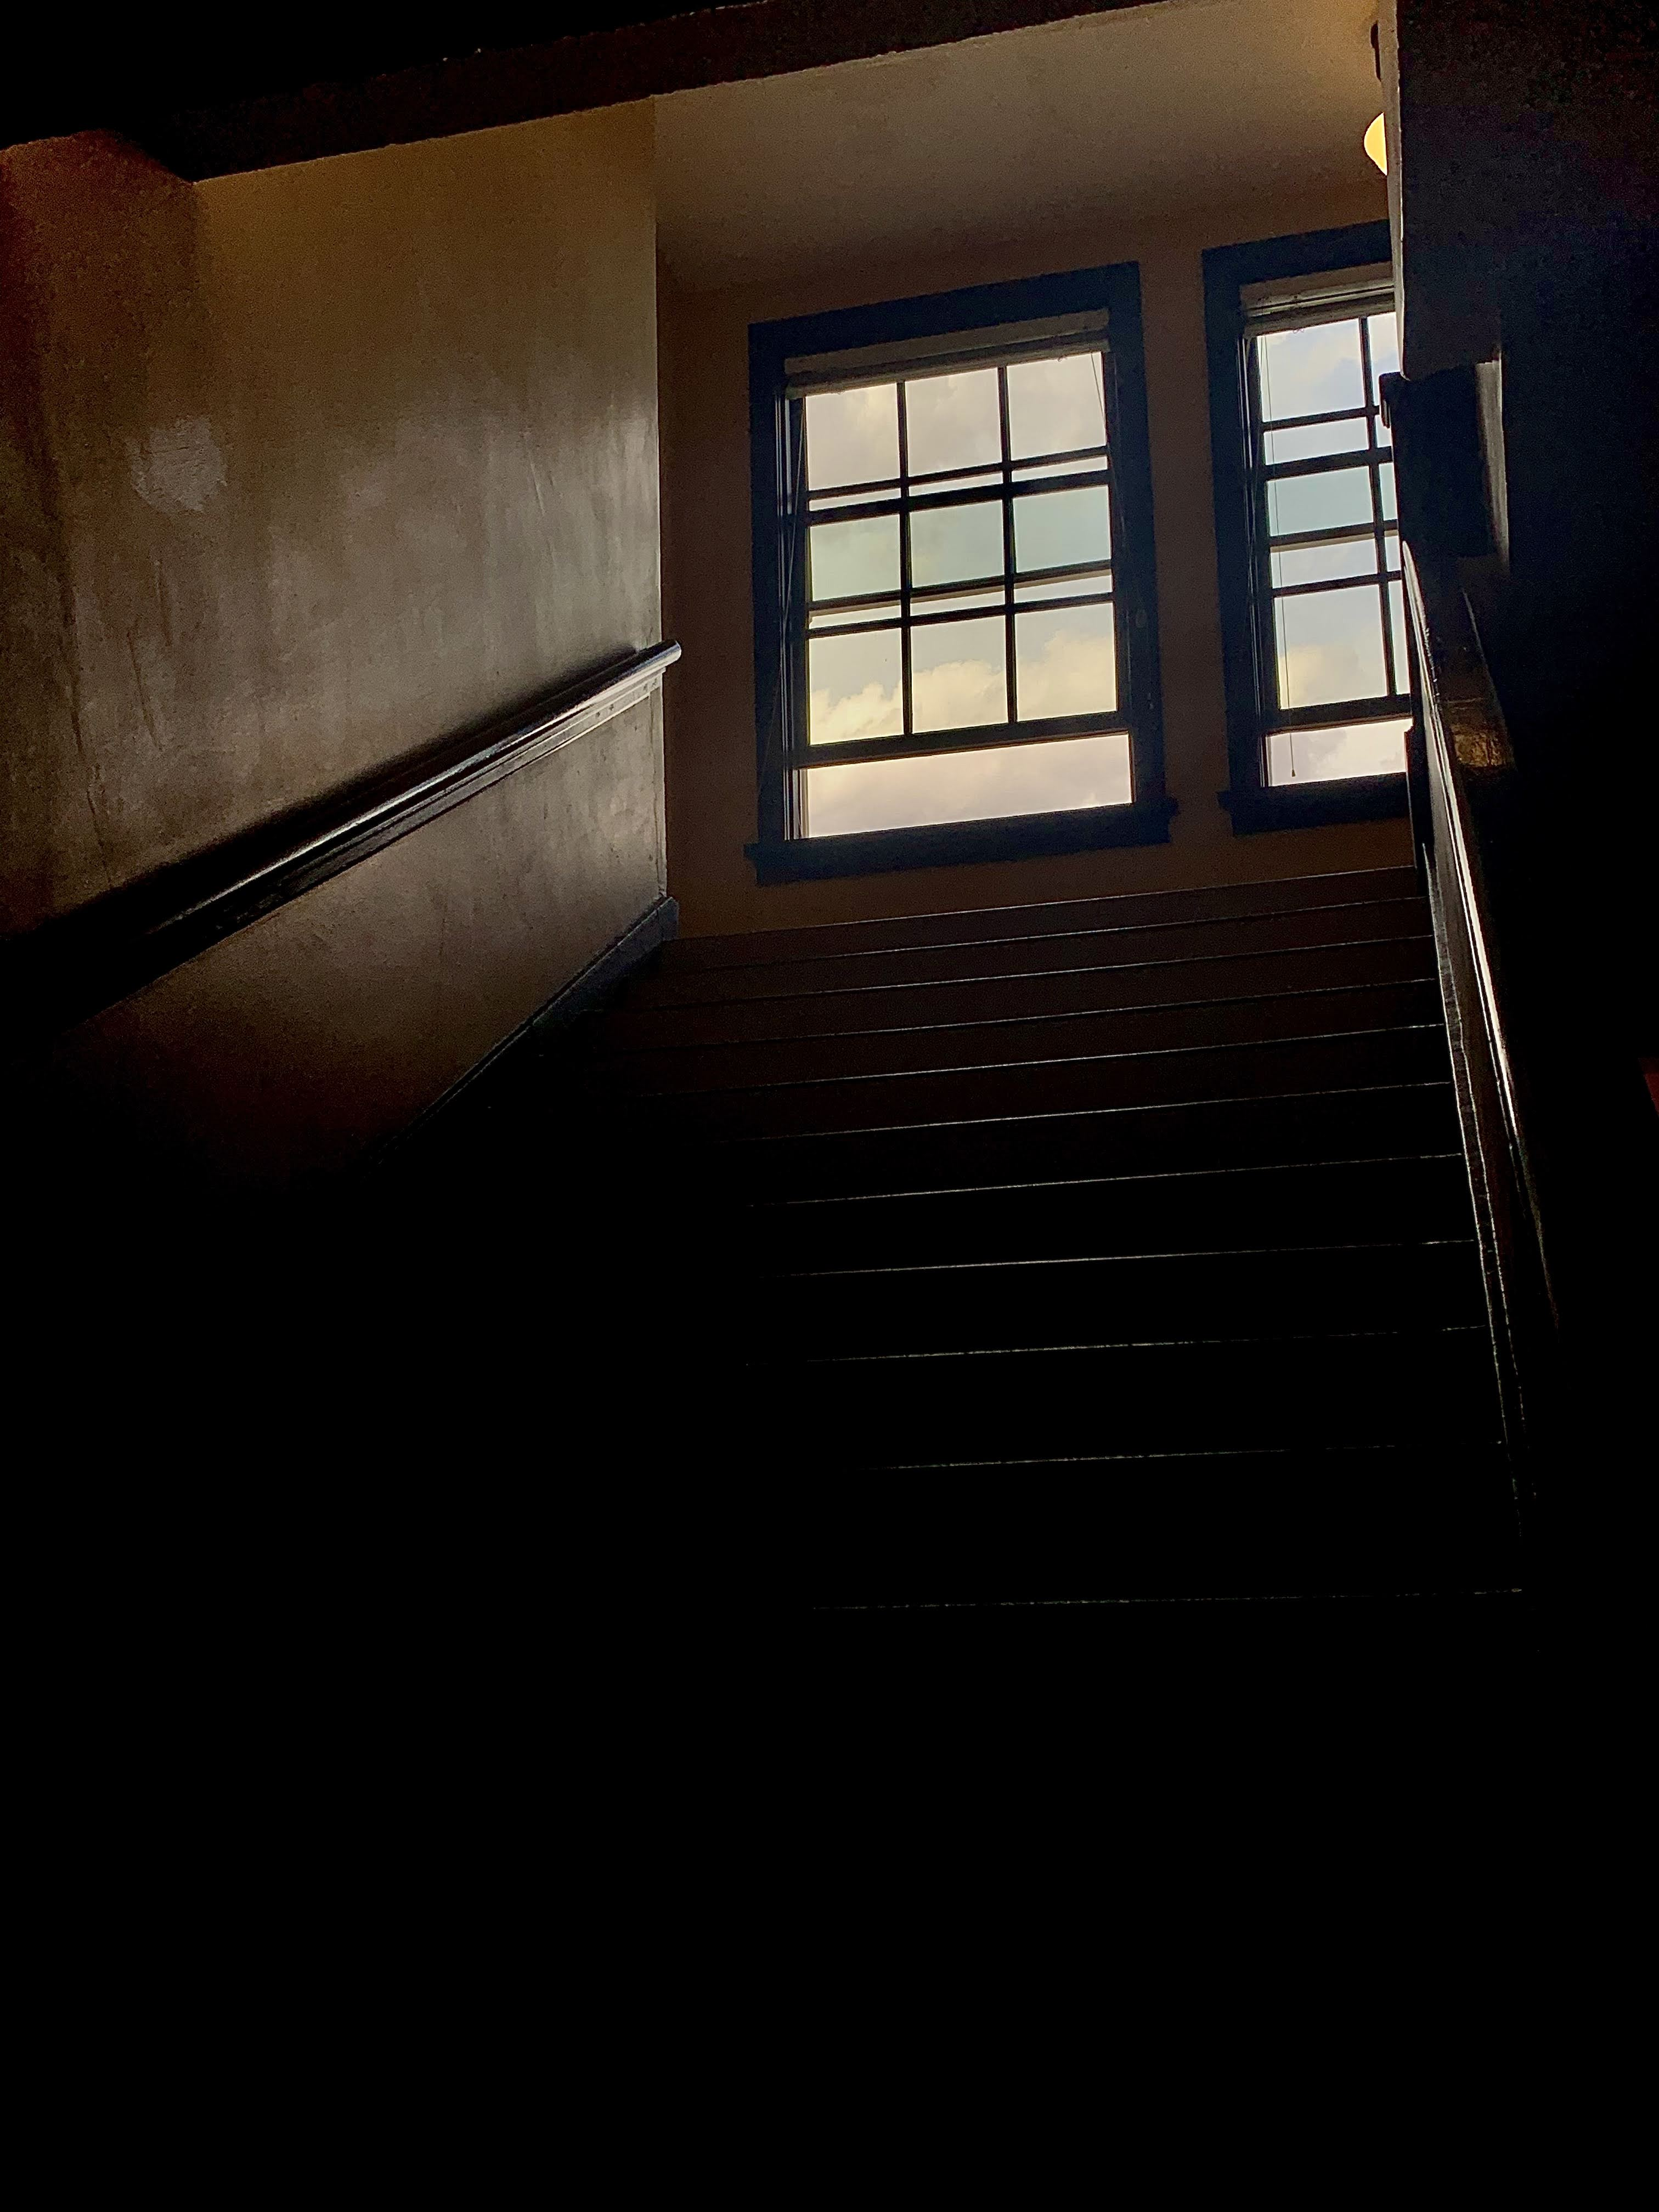 a staircase and an open window